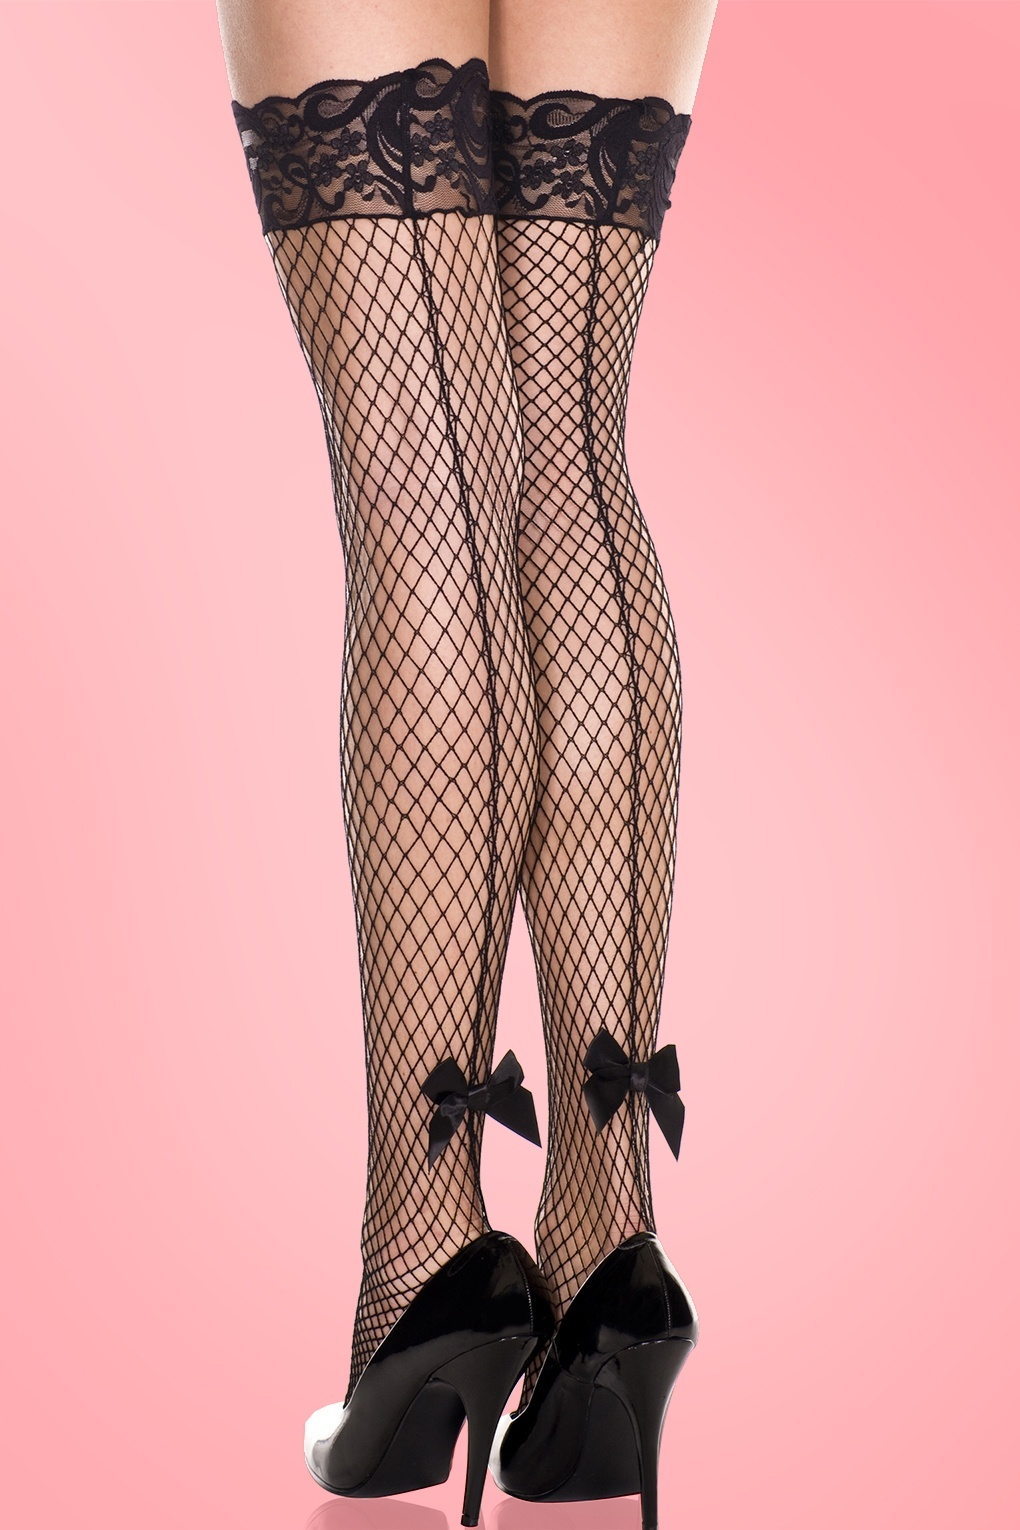 1920s Style Stockings & Socks 60s Kitten Backseam Lace Net Thigh Hi with Satin Bow £10.38 AT vintagedancer.com